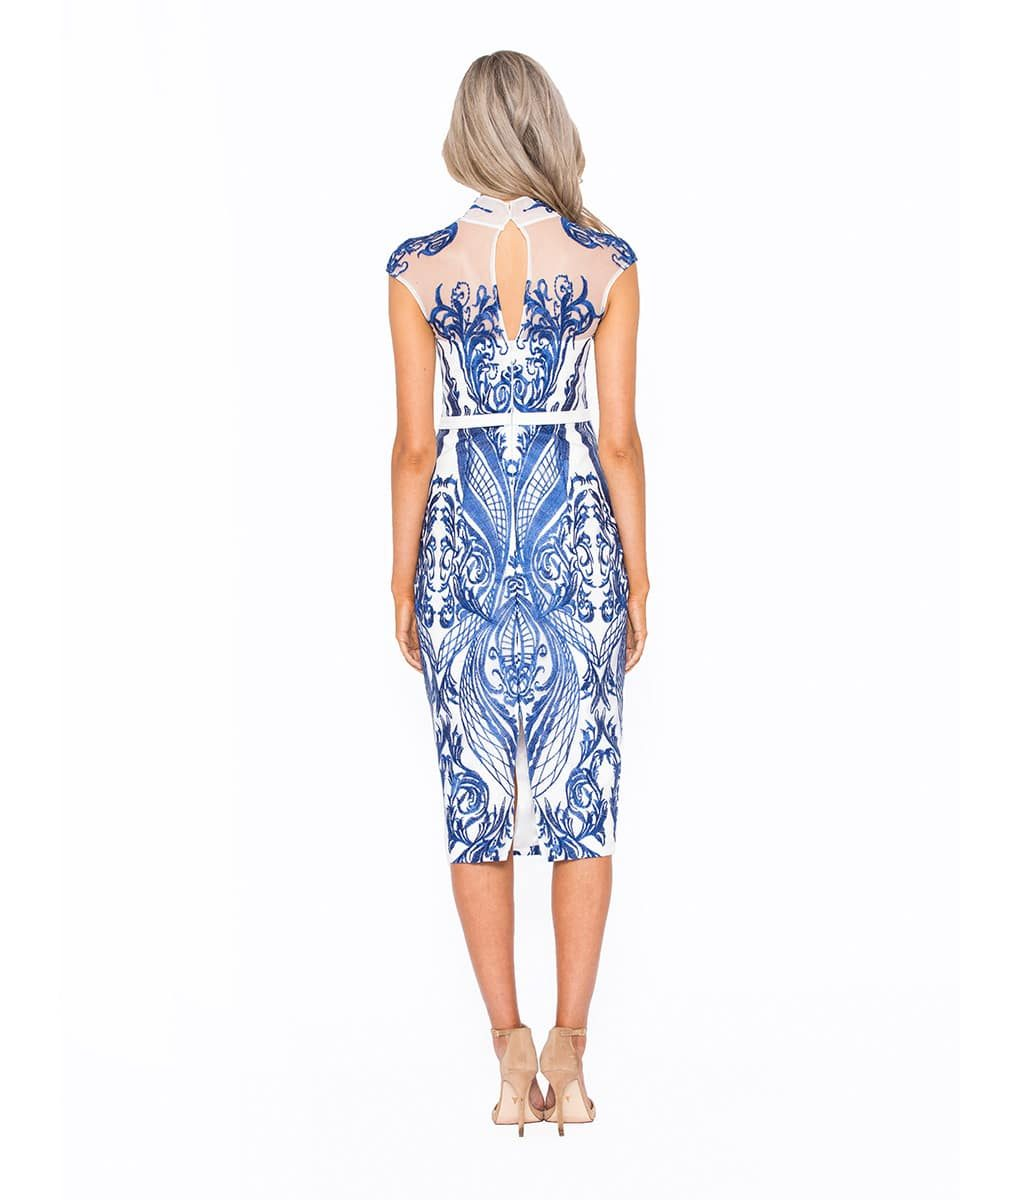 White & Cobalt Midi Lace Dress Alila Boutique